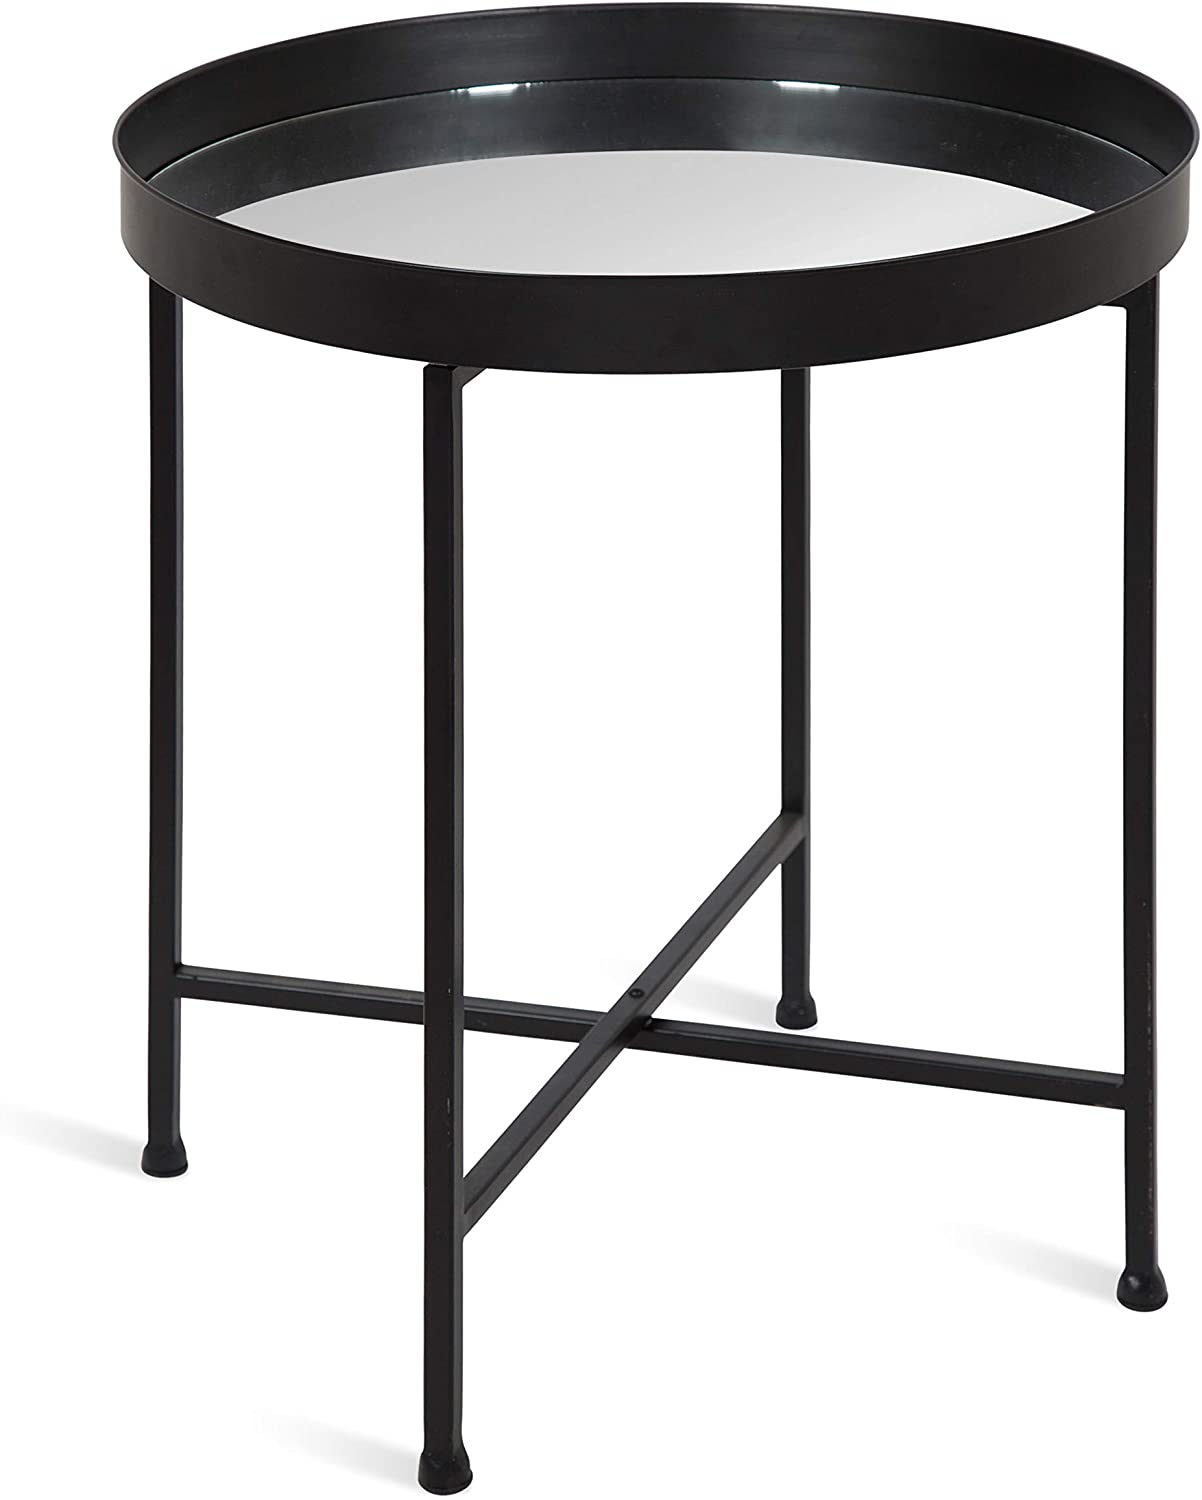 Kate and Laurel Celia Metal Foldable Round Accent Table, 18.25